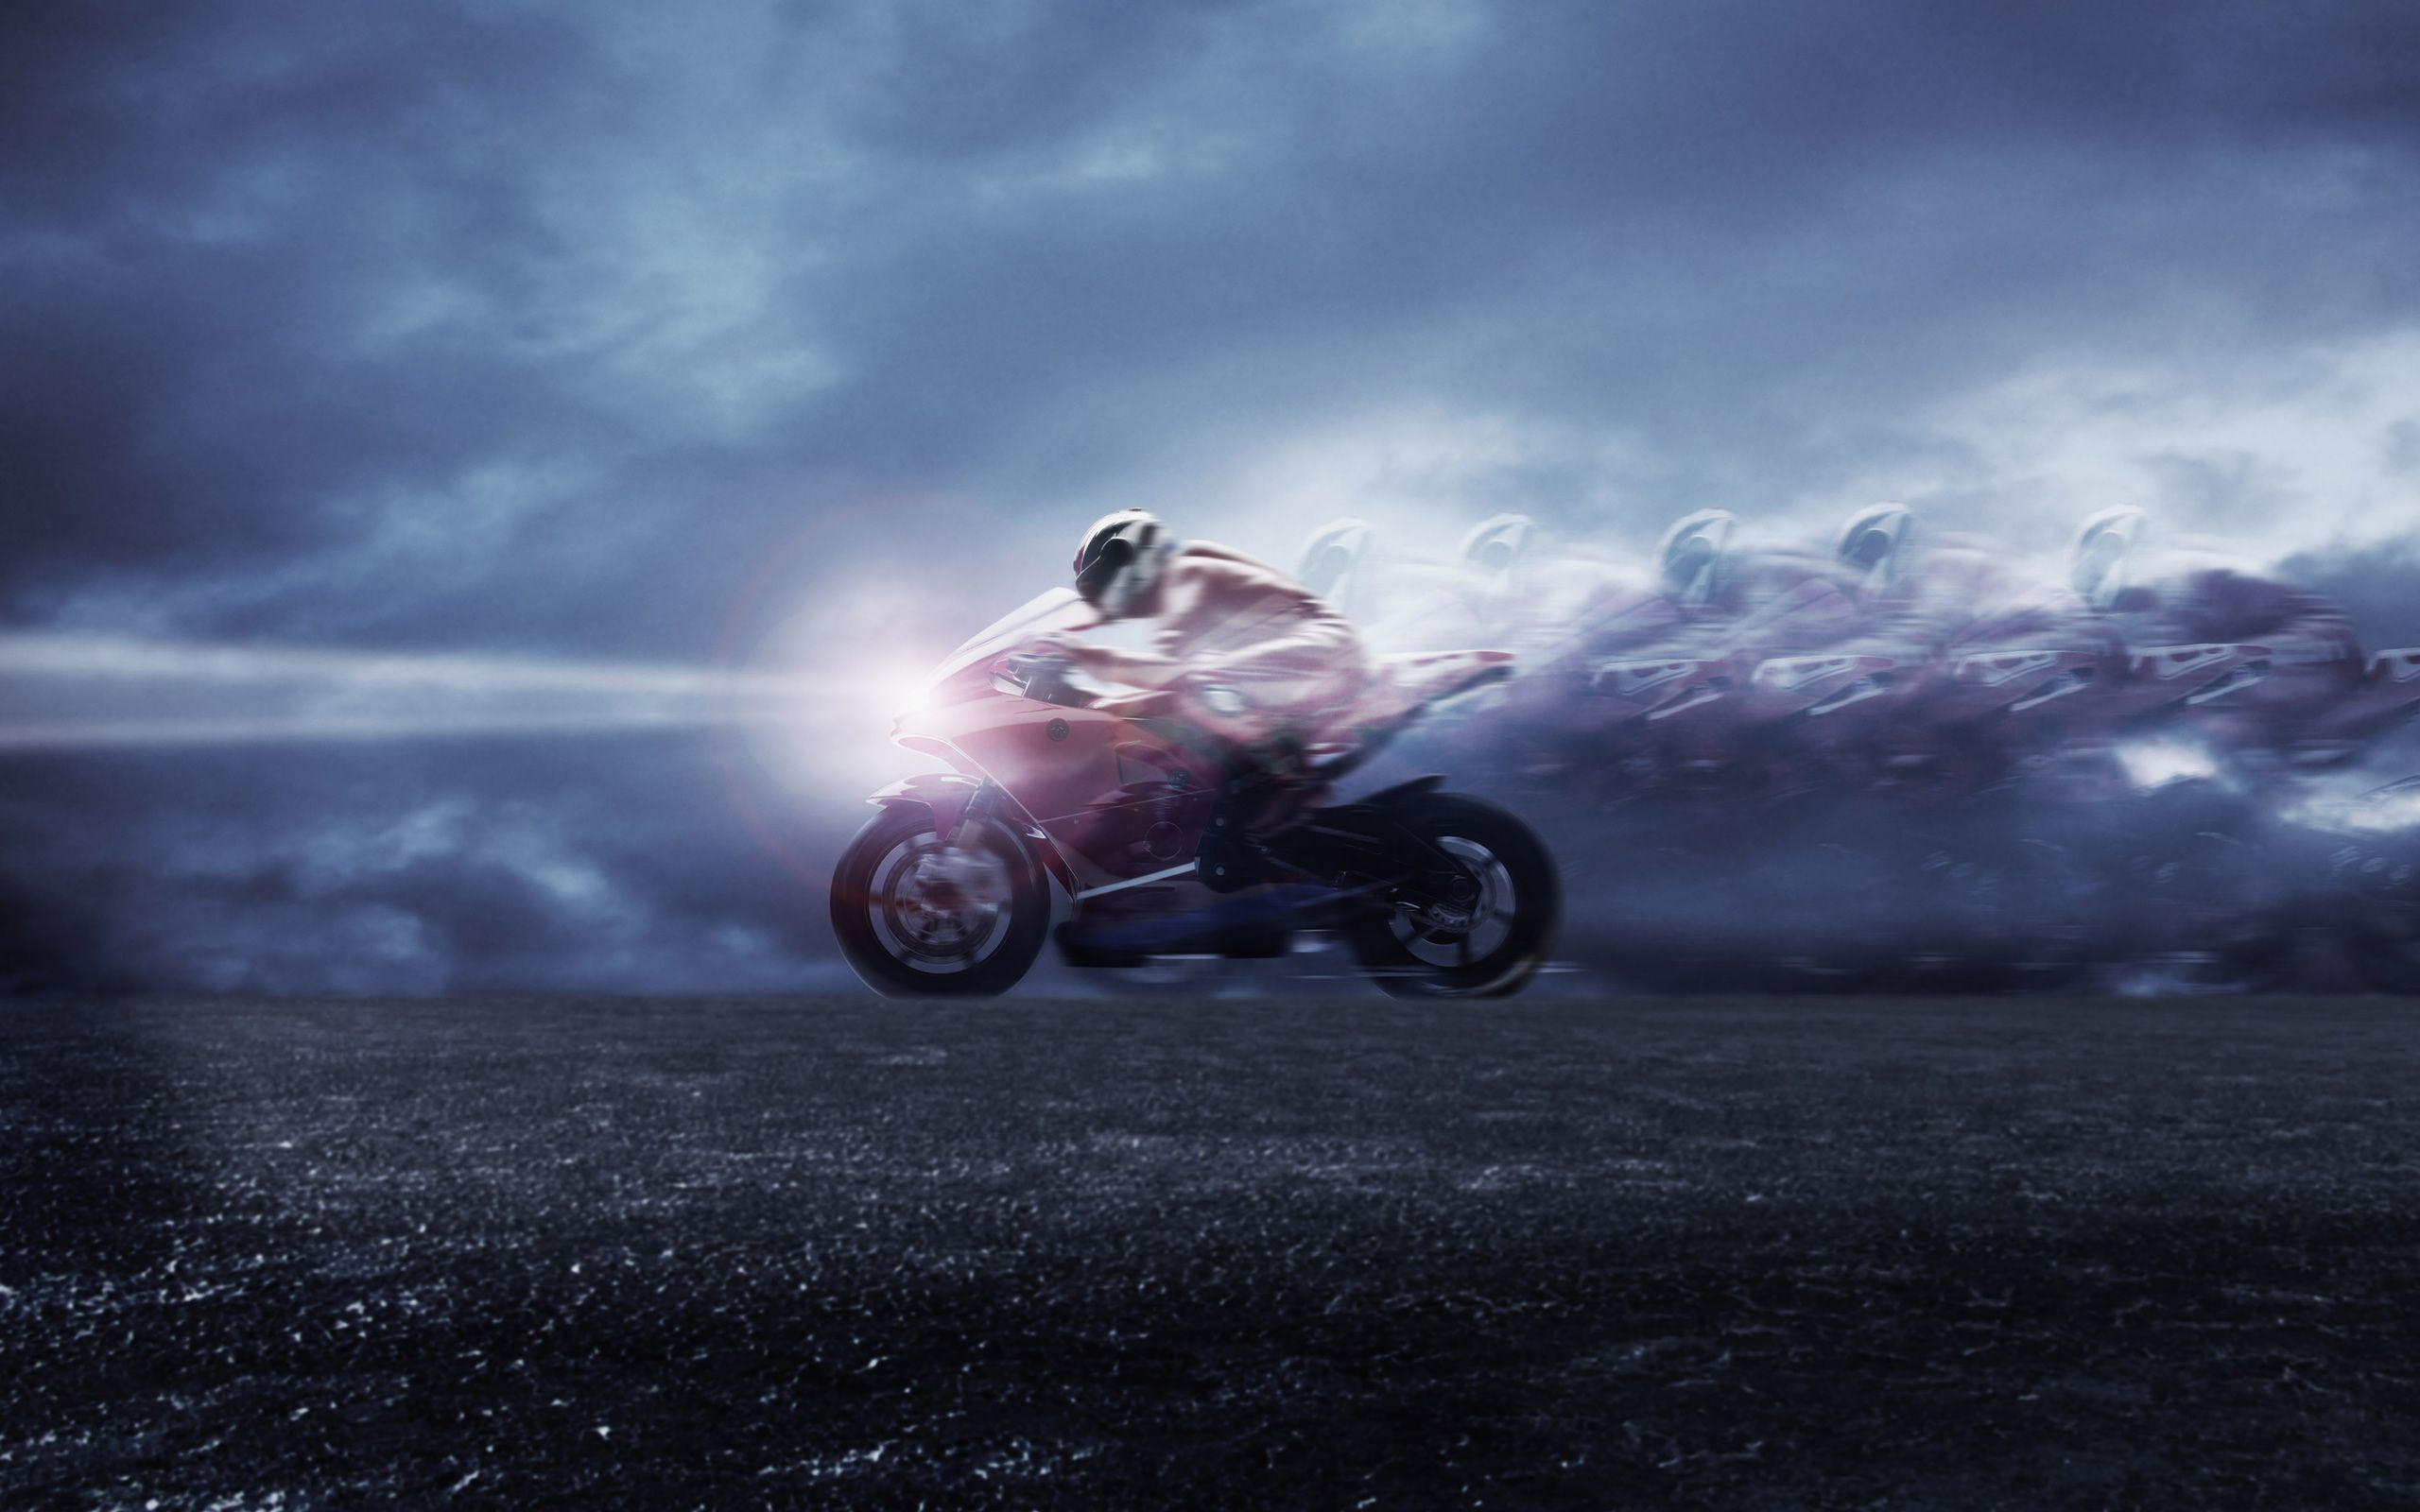 super bikes wallpapers for free download about wallpapers. | hd